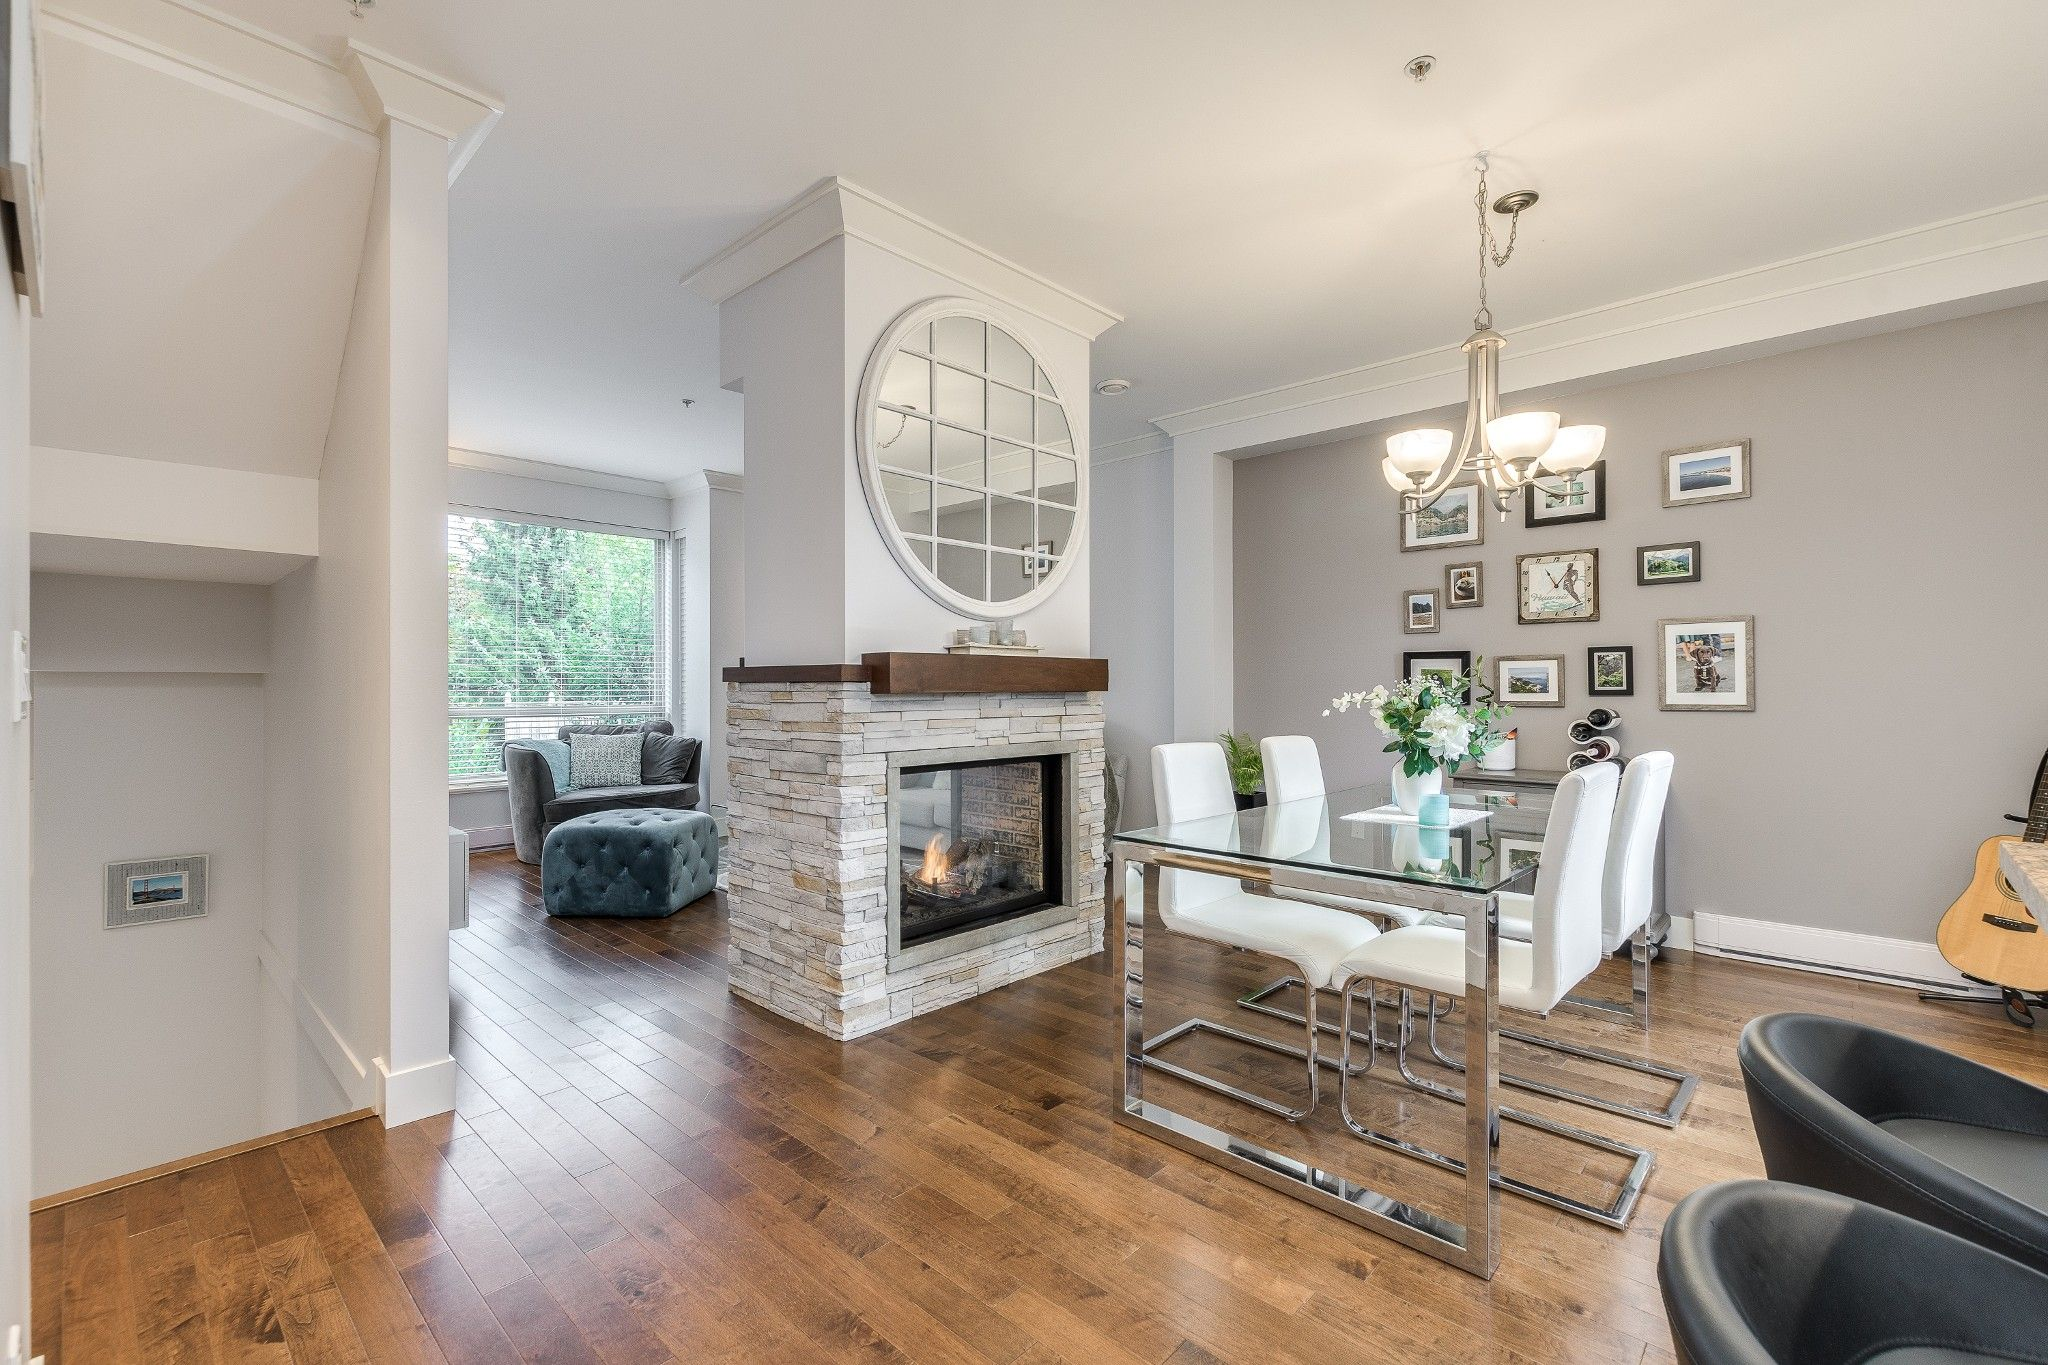 Photo 7: Photos: 24 897 Premier Street in : Lynnmour Townhouse for sale (North Vancouver)